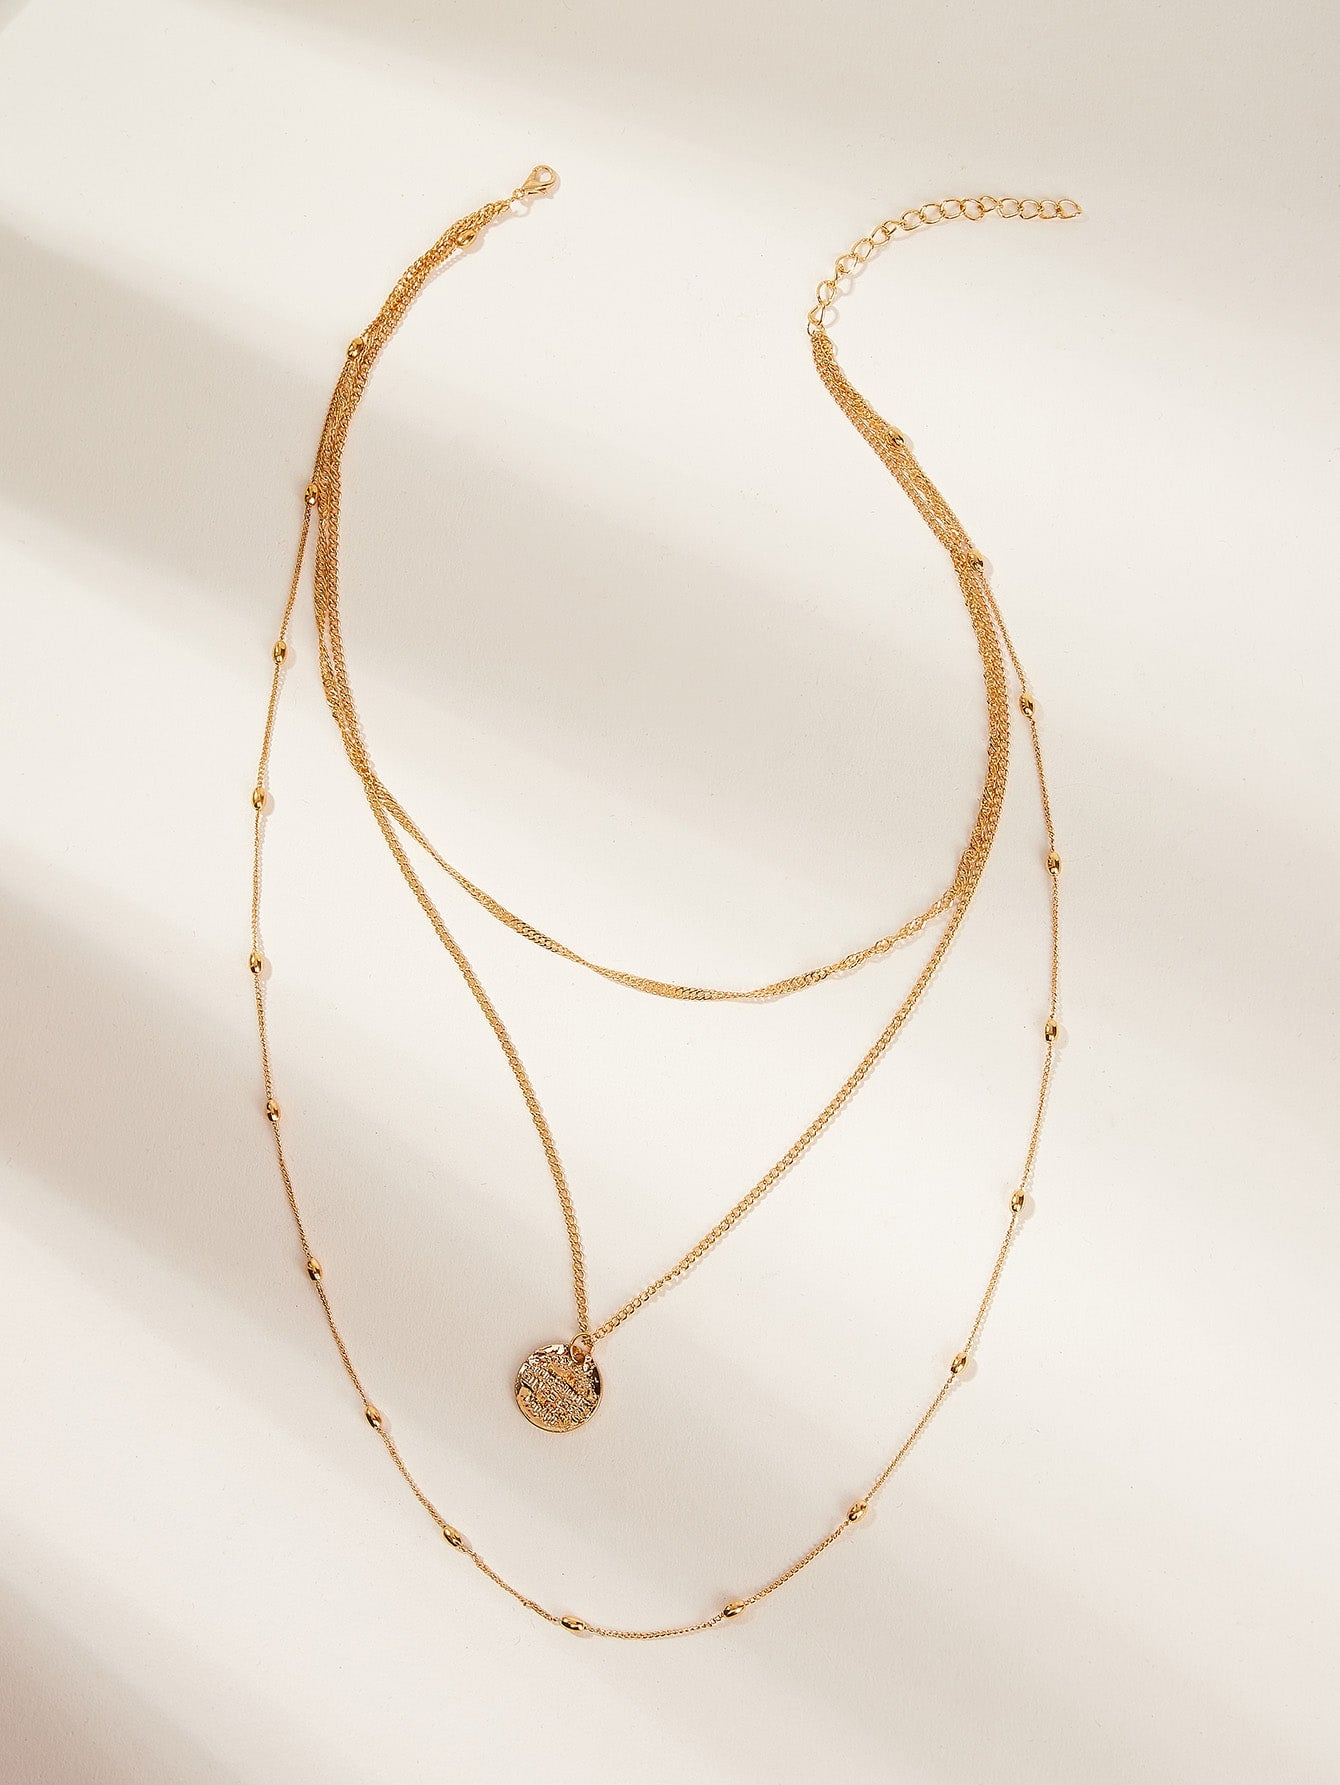 Multi Layered Golden Disc Pendant 1pc Chain Necklace